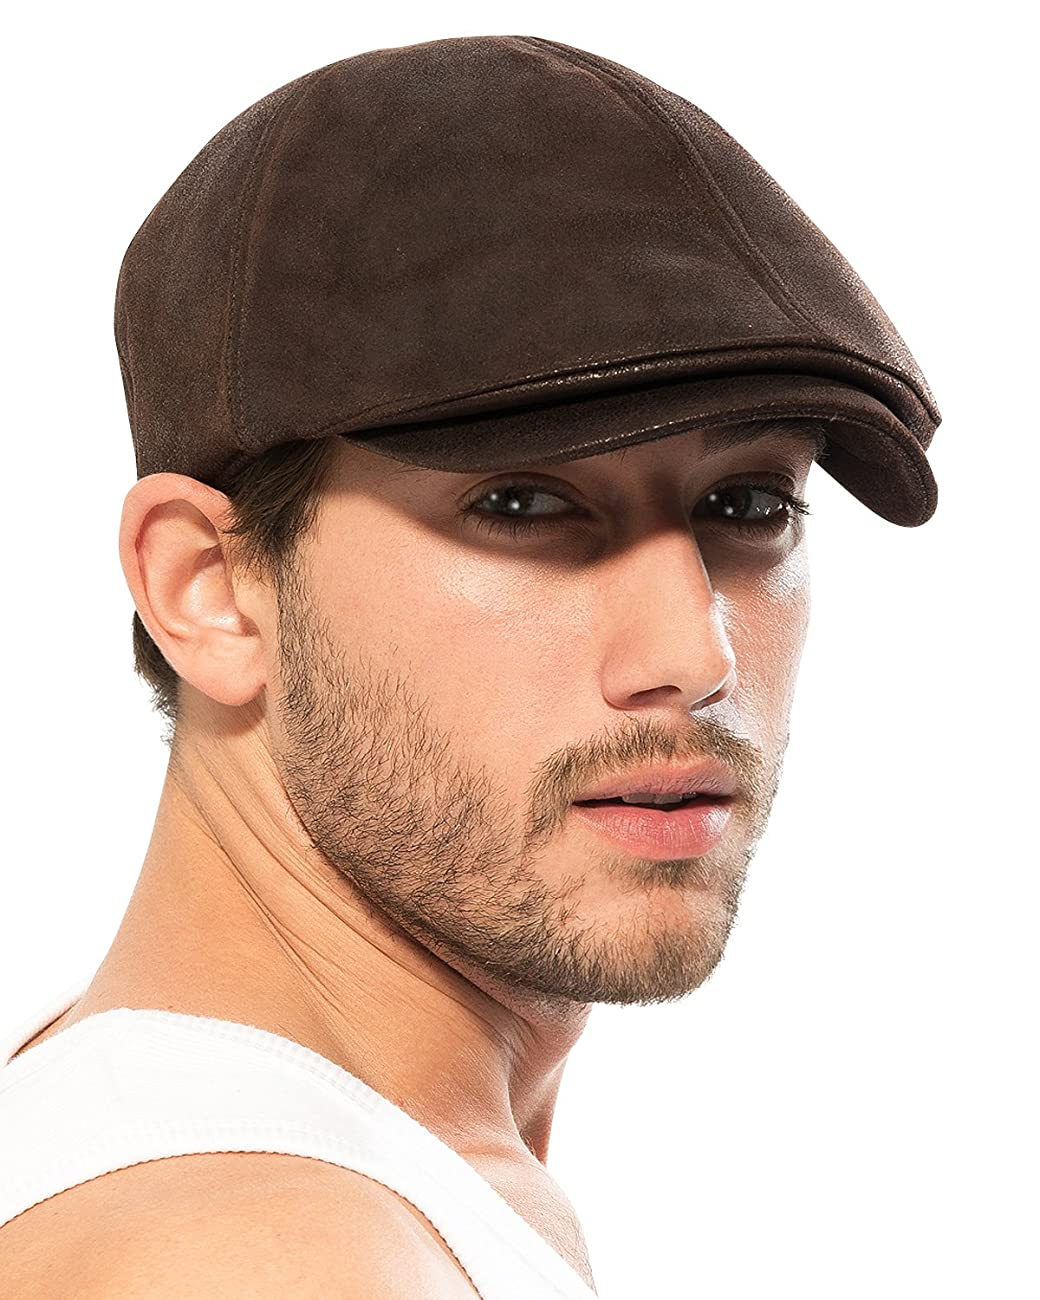 ililily Flat Cap Vintage Cabbie Hat Gatsby Ivy Cap Irish Hunting Newsboy Stretch 1